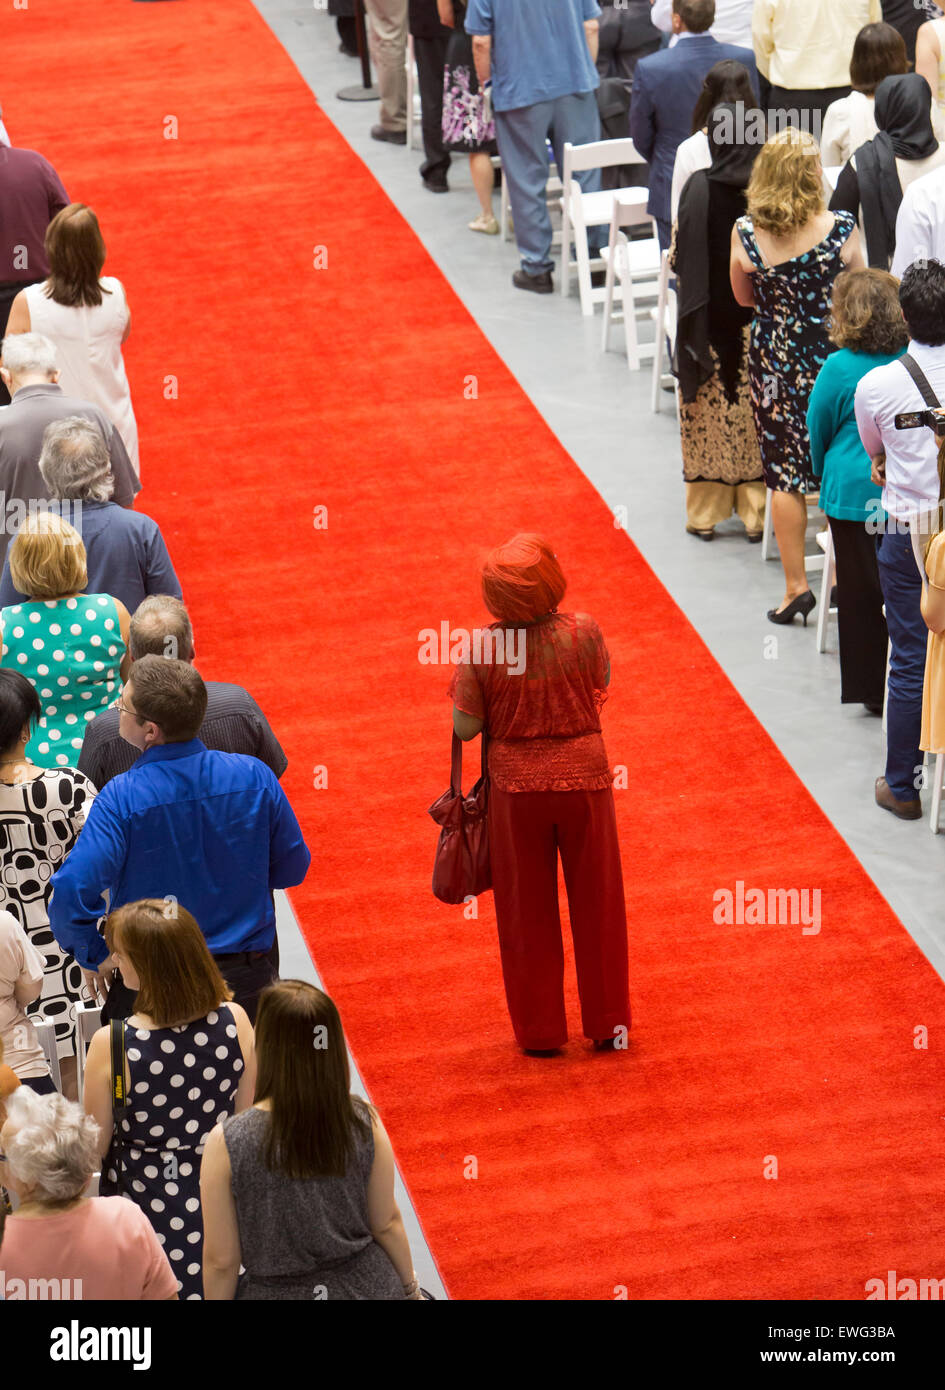 Detroit, Michigan - A woman stands on the red carpet at the University of Detroit Mercy School of Law graduation - Stock Image